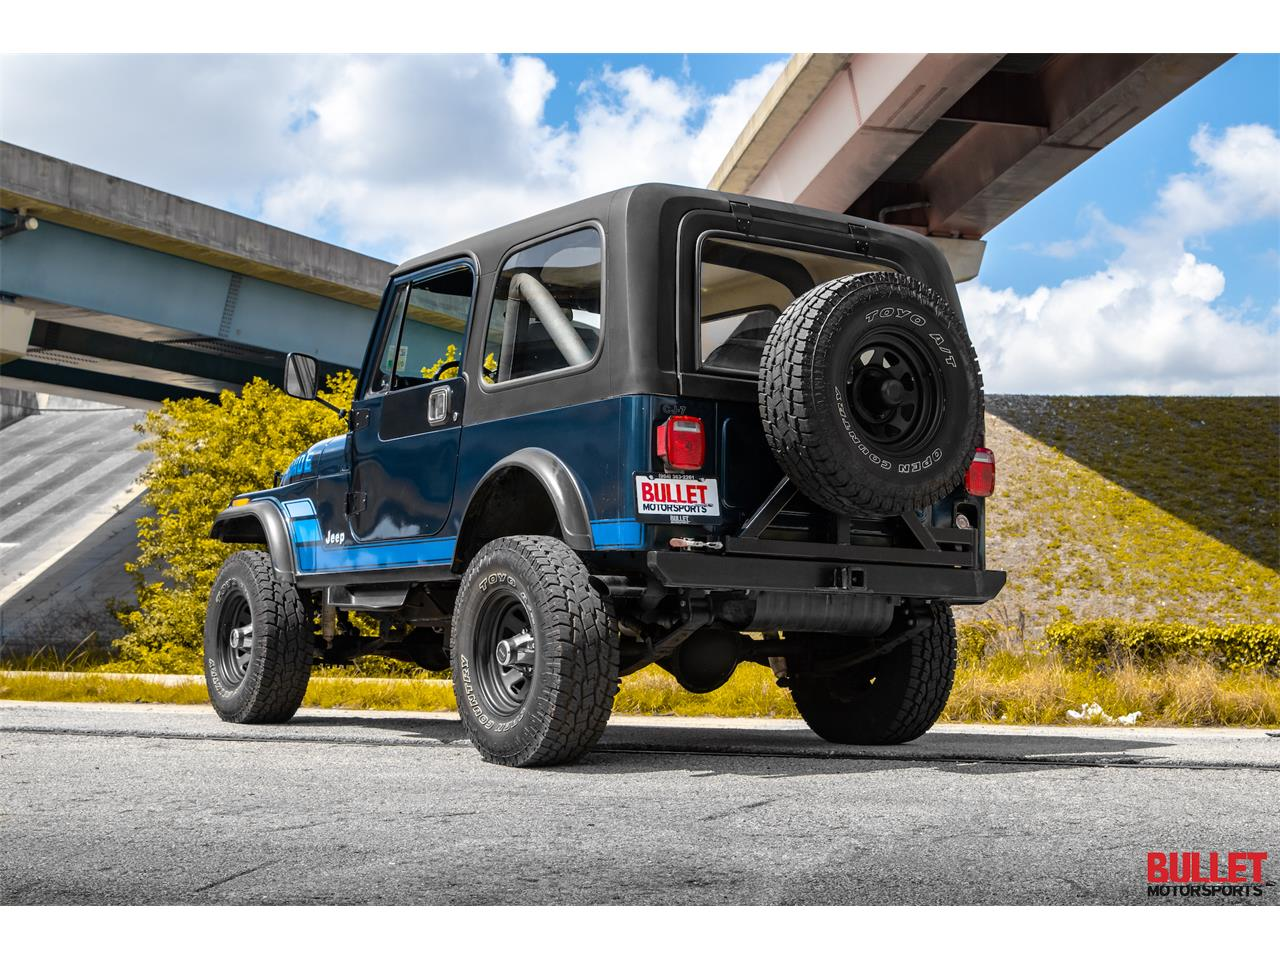 Large Picture of '83 CJ7 located in Fort Lauderdale Florida - $17,000.00 - PSWH